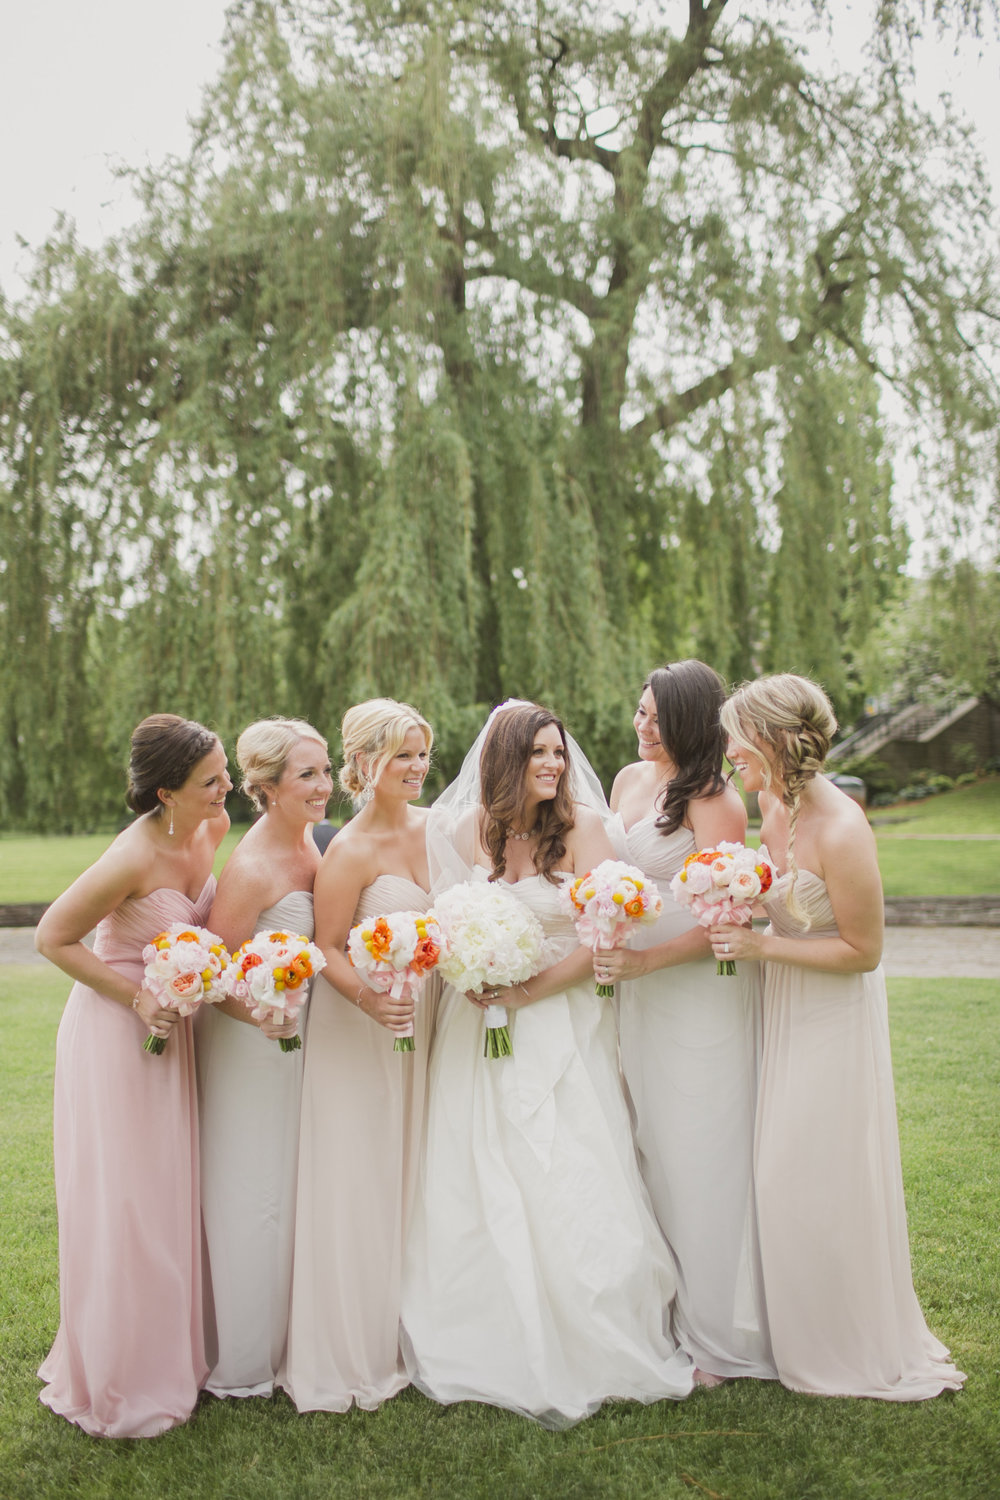 mismatched bridesmaids kj and co burlington golf and country club wedding photos oakville wedding planner, spencer smith park burlington